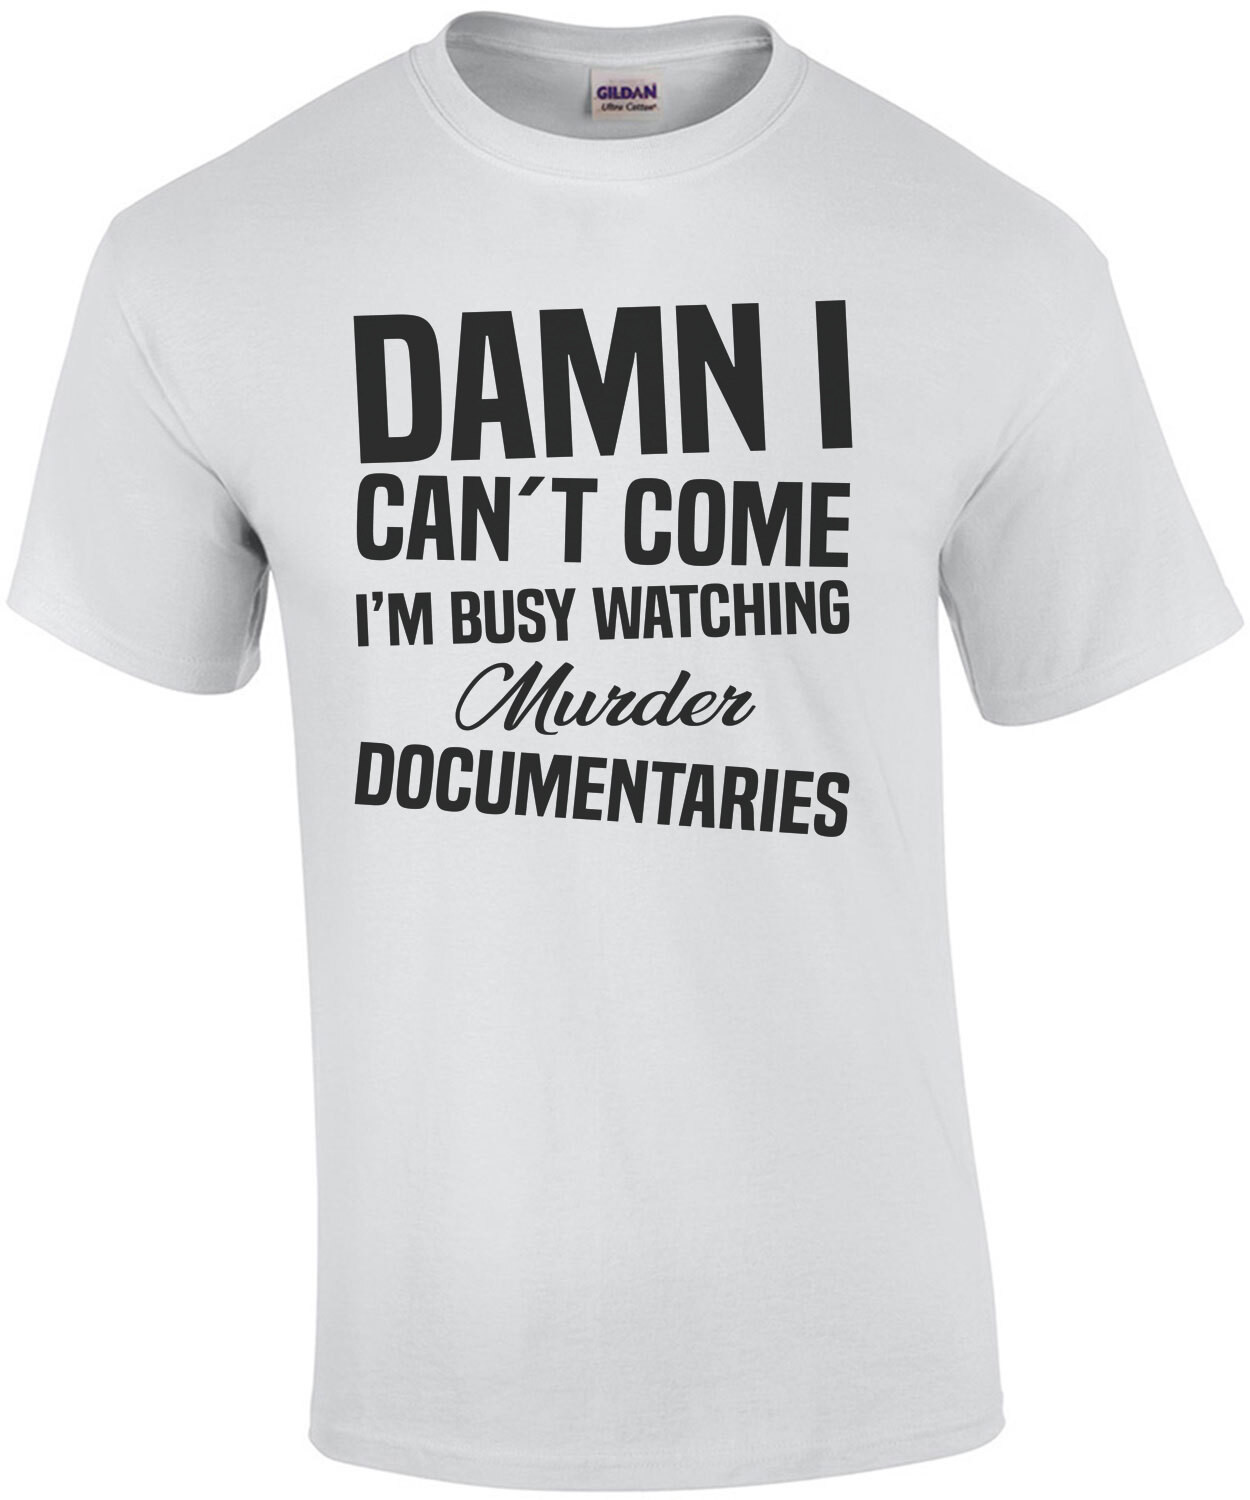 Damn I can't come I'm busy watching murder documentaries - funny t-shirt